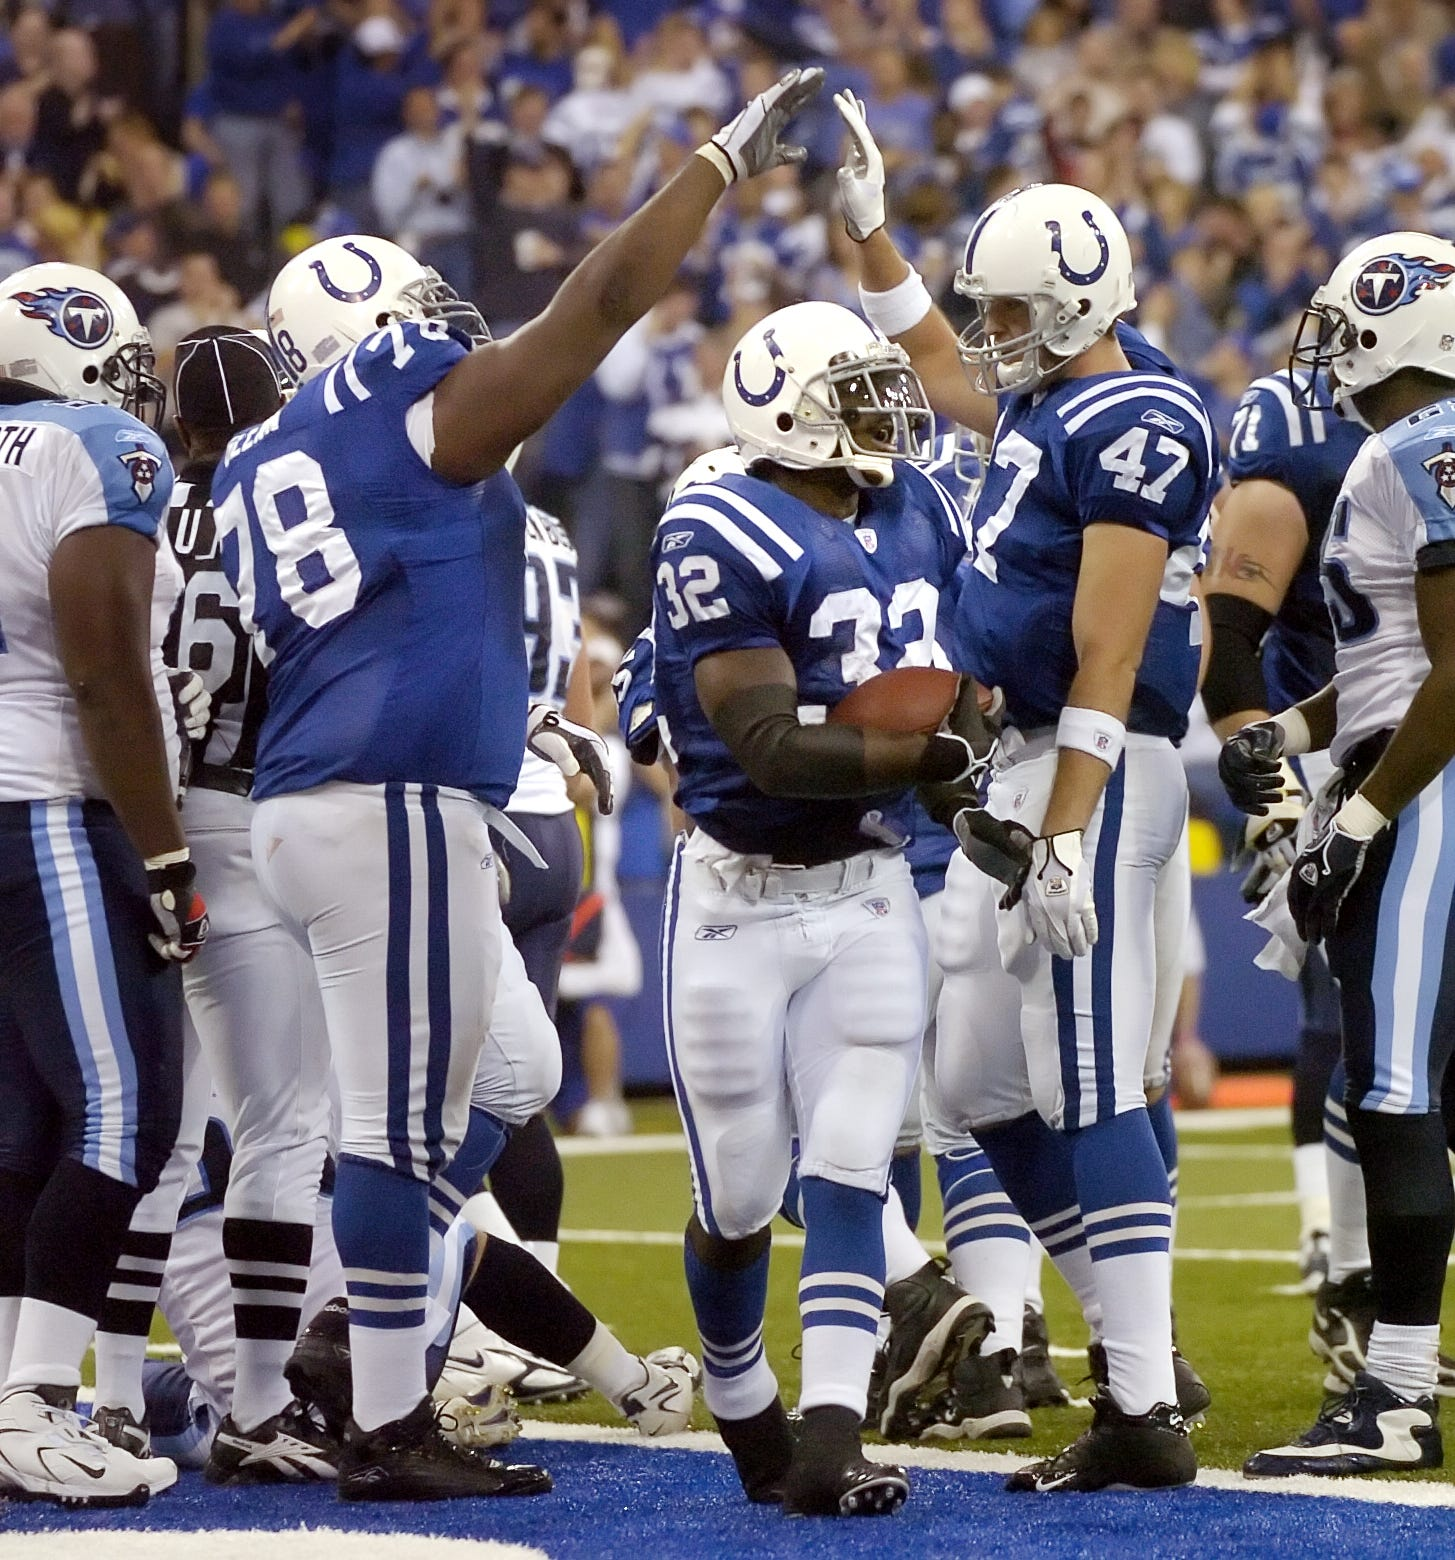 966ee335cab http://www.indystar.com/picture-gallery/sports/nfl/colts/2017/10/05/colts  ...